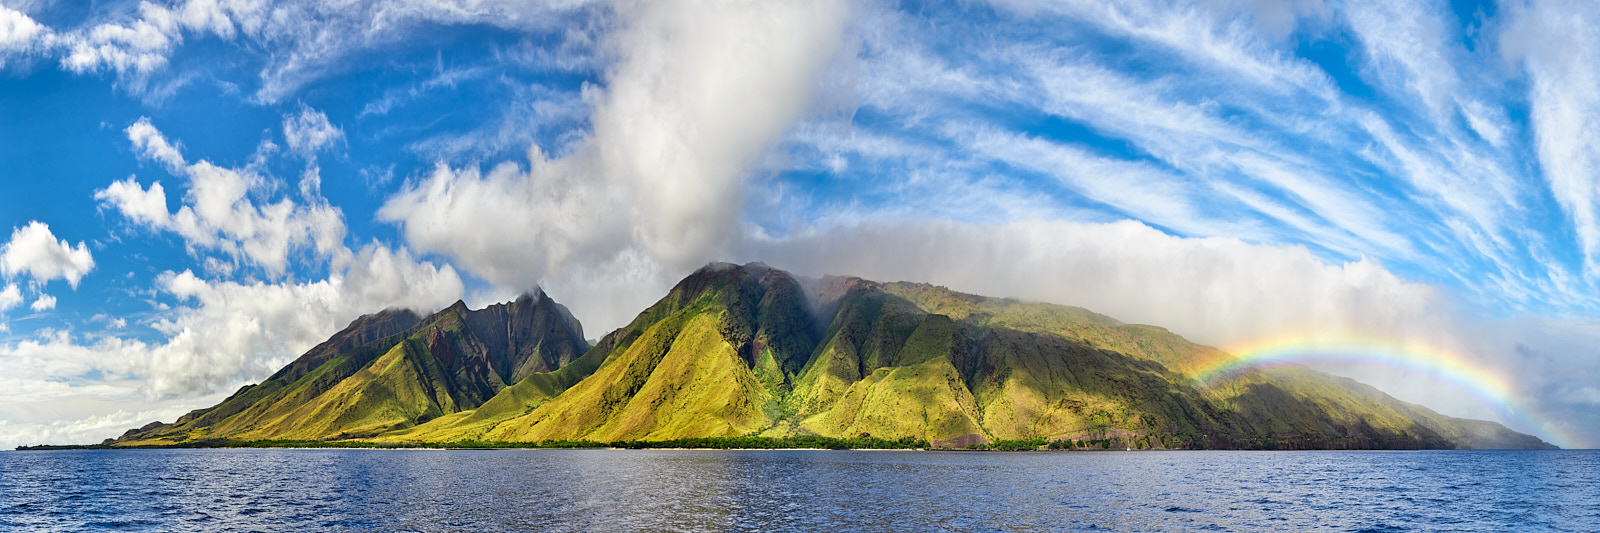 panorama of the island of Maui photographed from a boat off of Olowalu featuring a rainbow